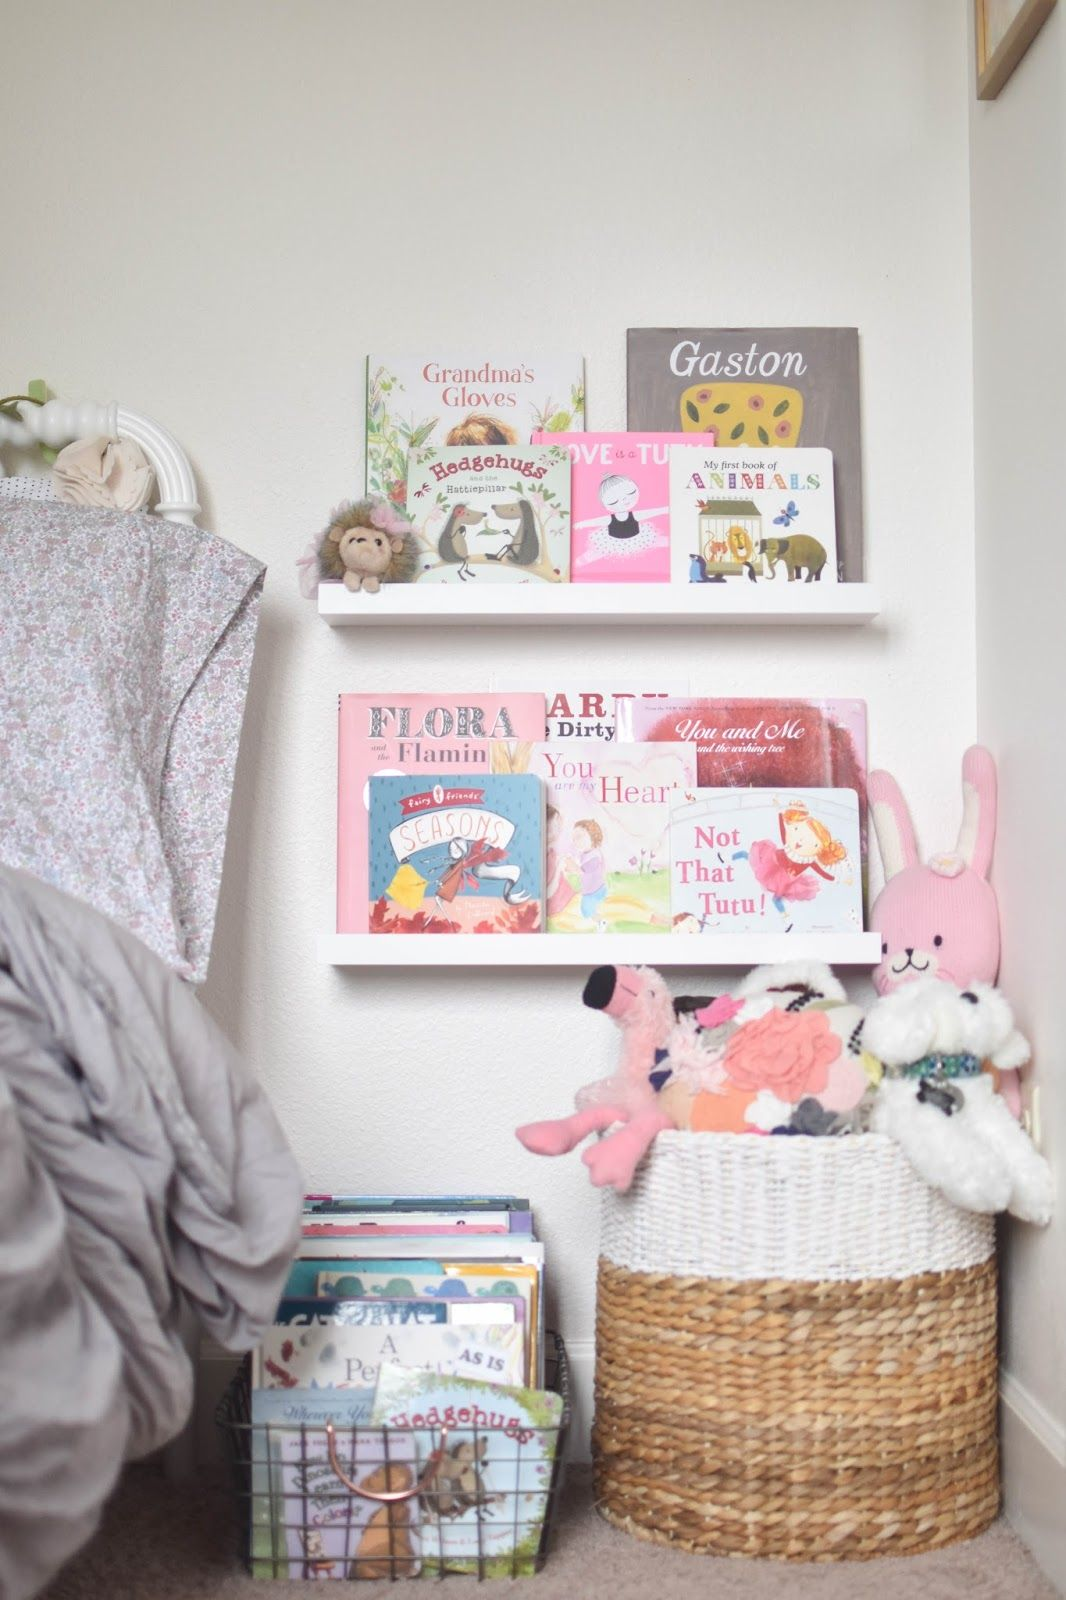 25 Amazing Girls Room Decor Ideas For Teenagers